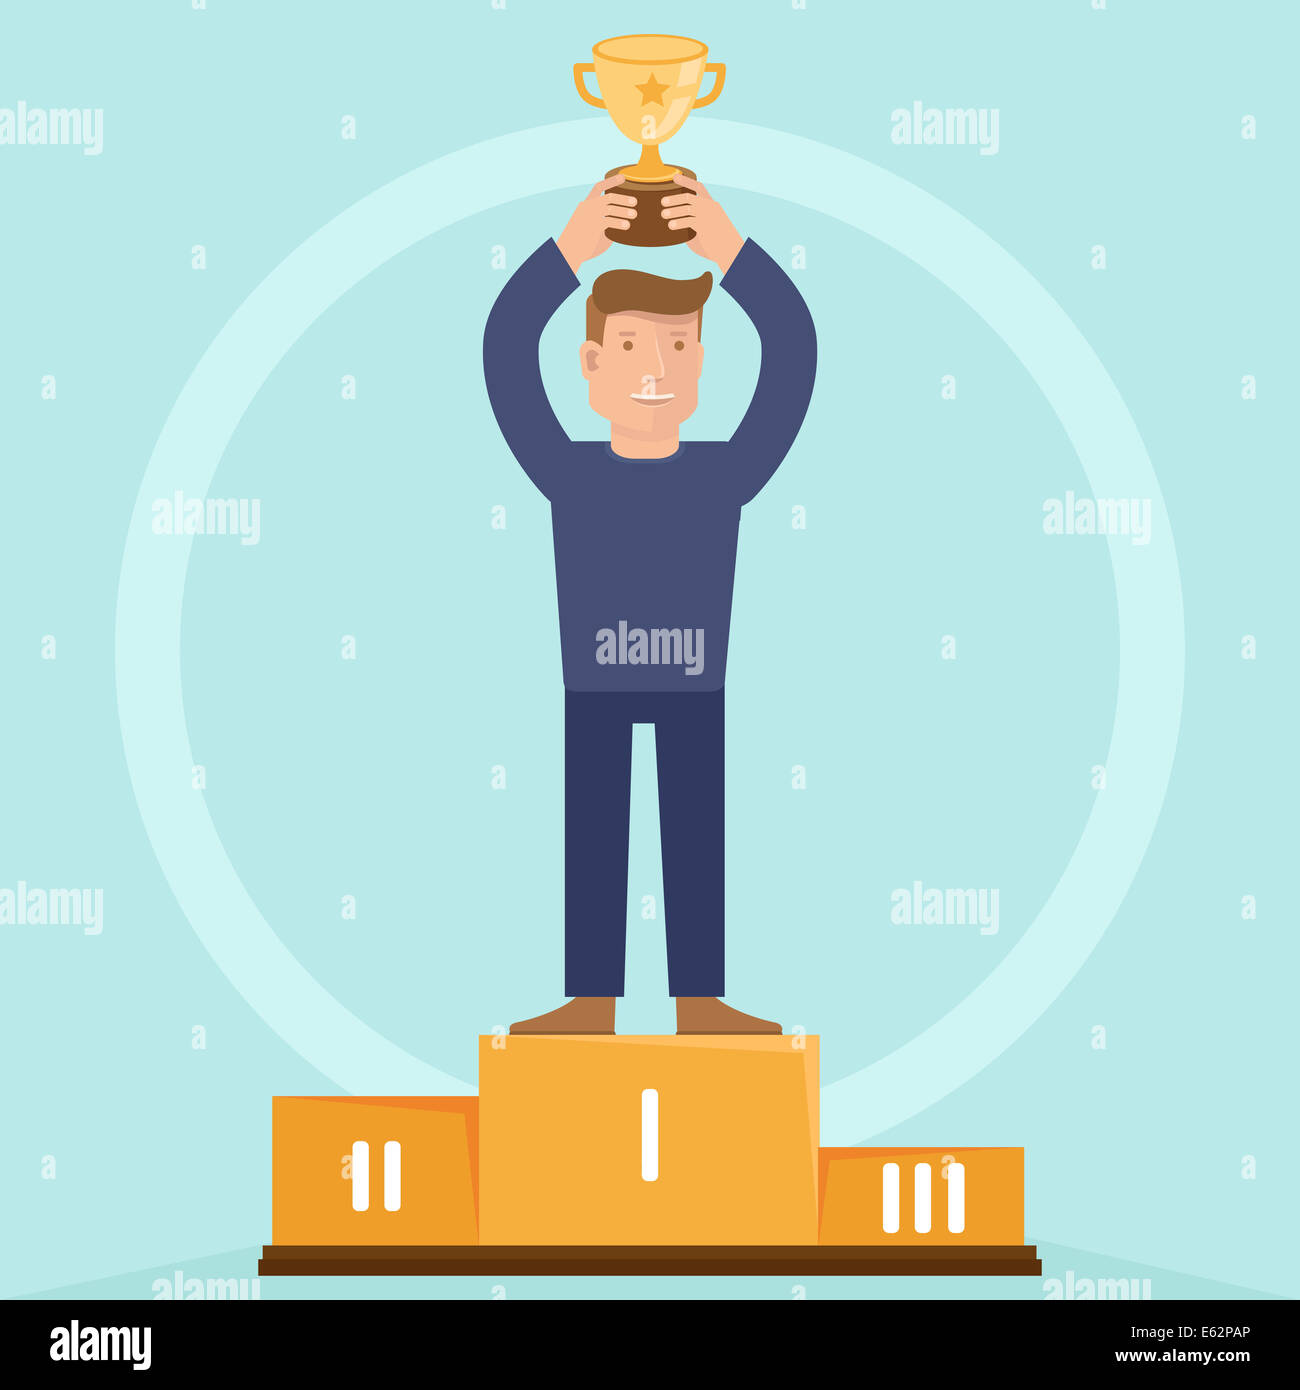 Victory concept - man holding golden bowl - illustration in flat retro style - Stock Image